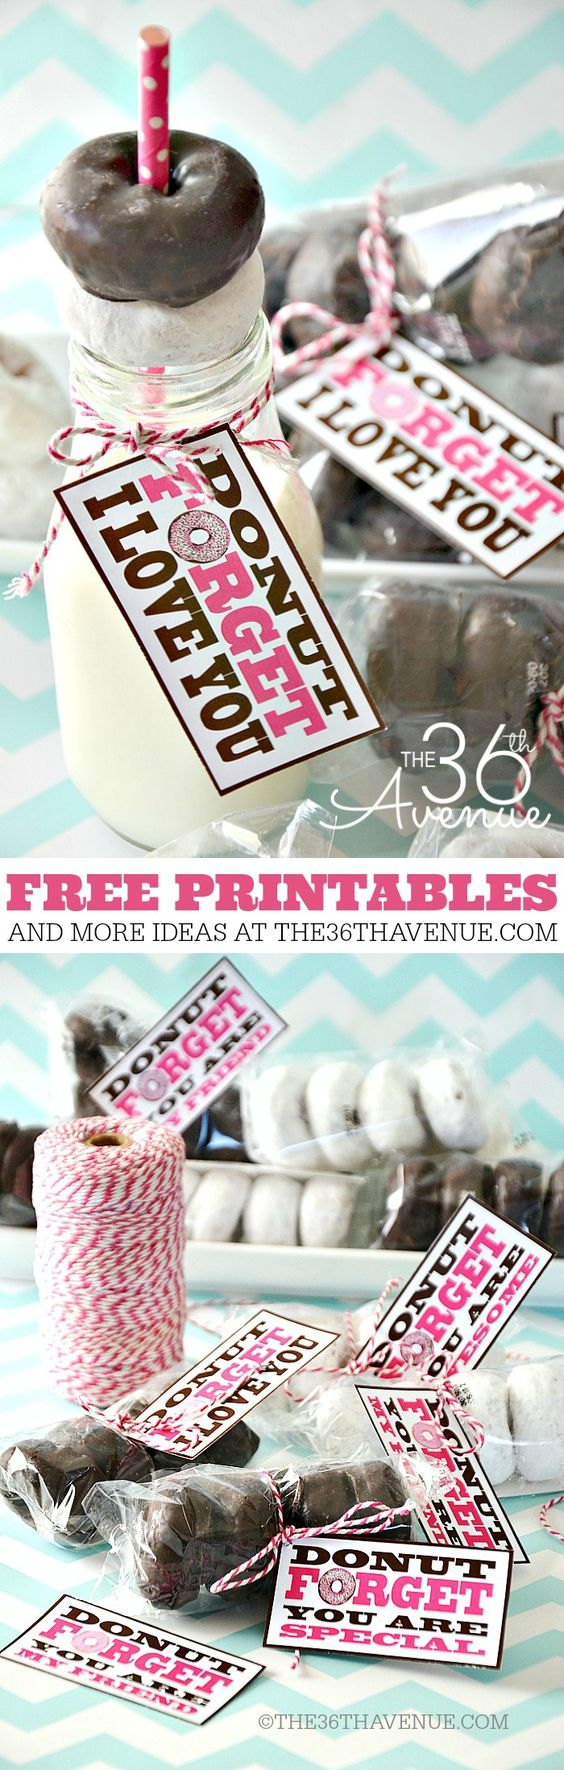 Gift Ideas - Free Printable and Valentines at the36thavenue.com #handmade: